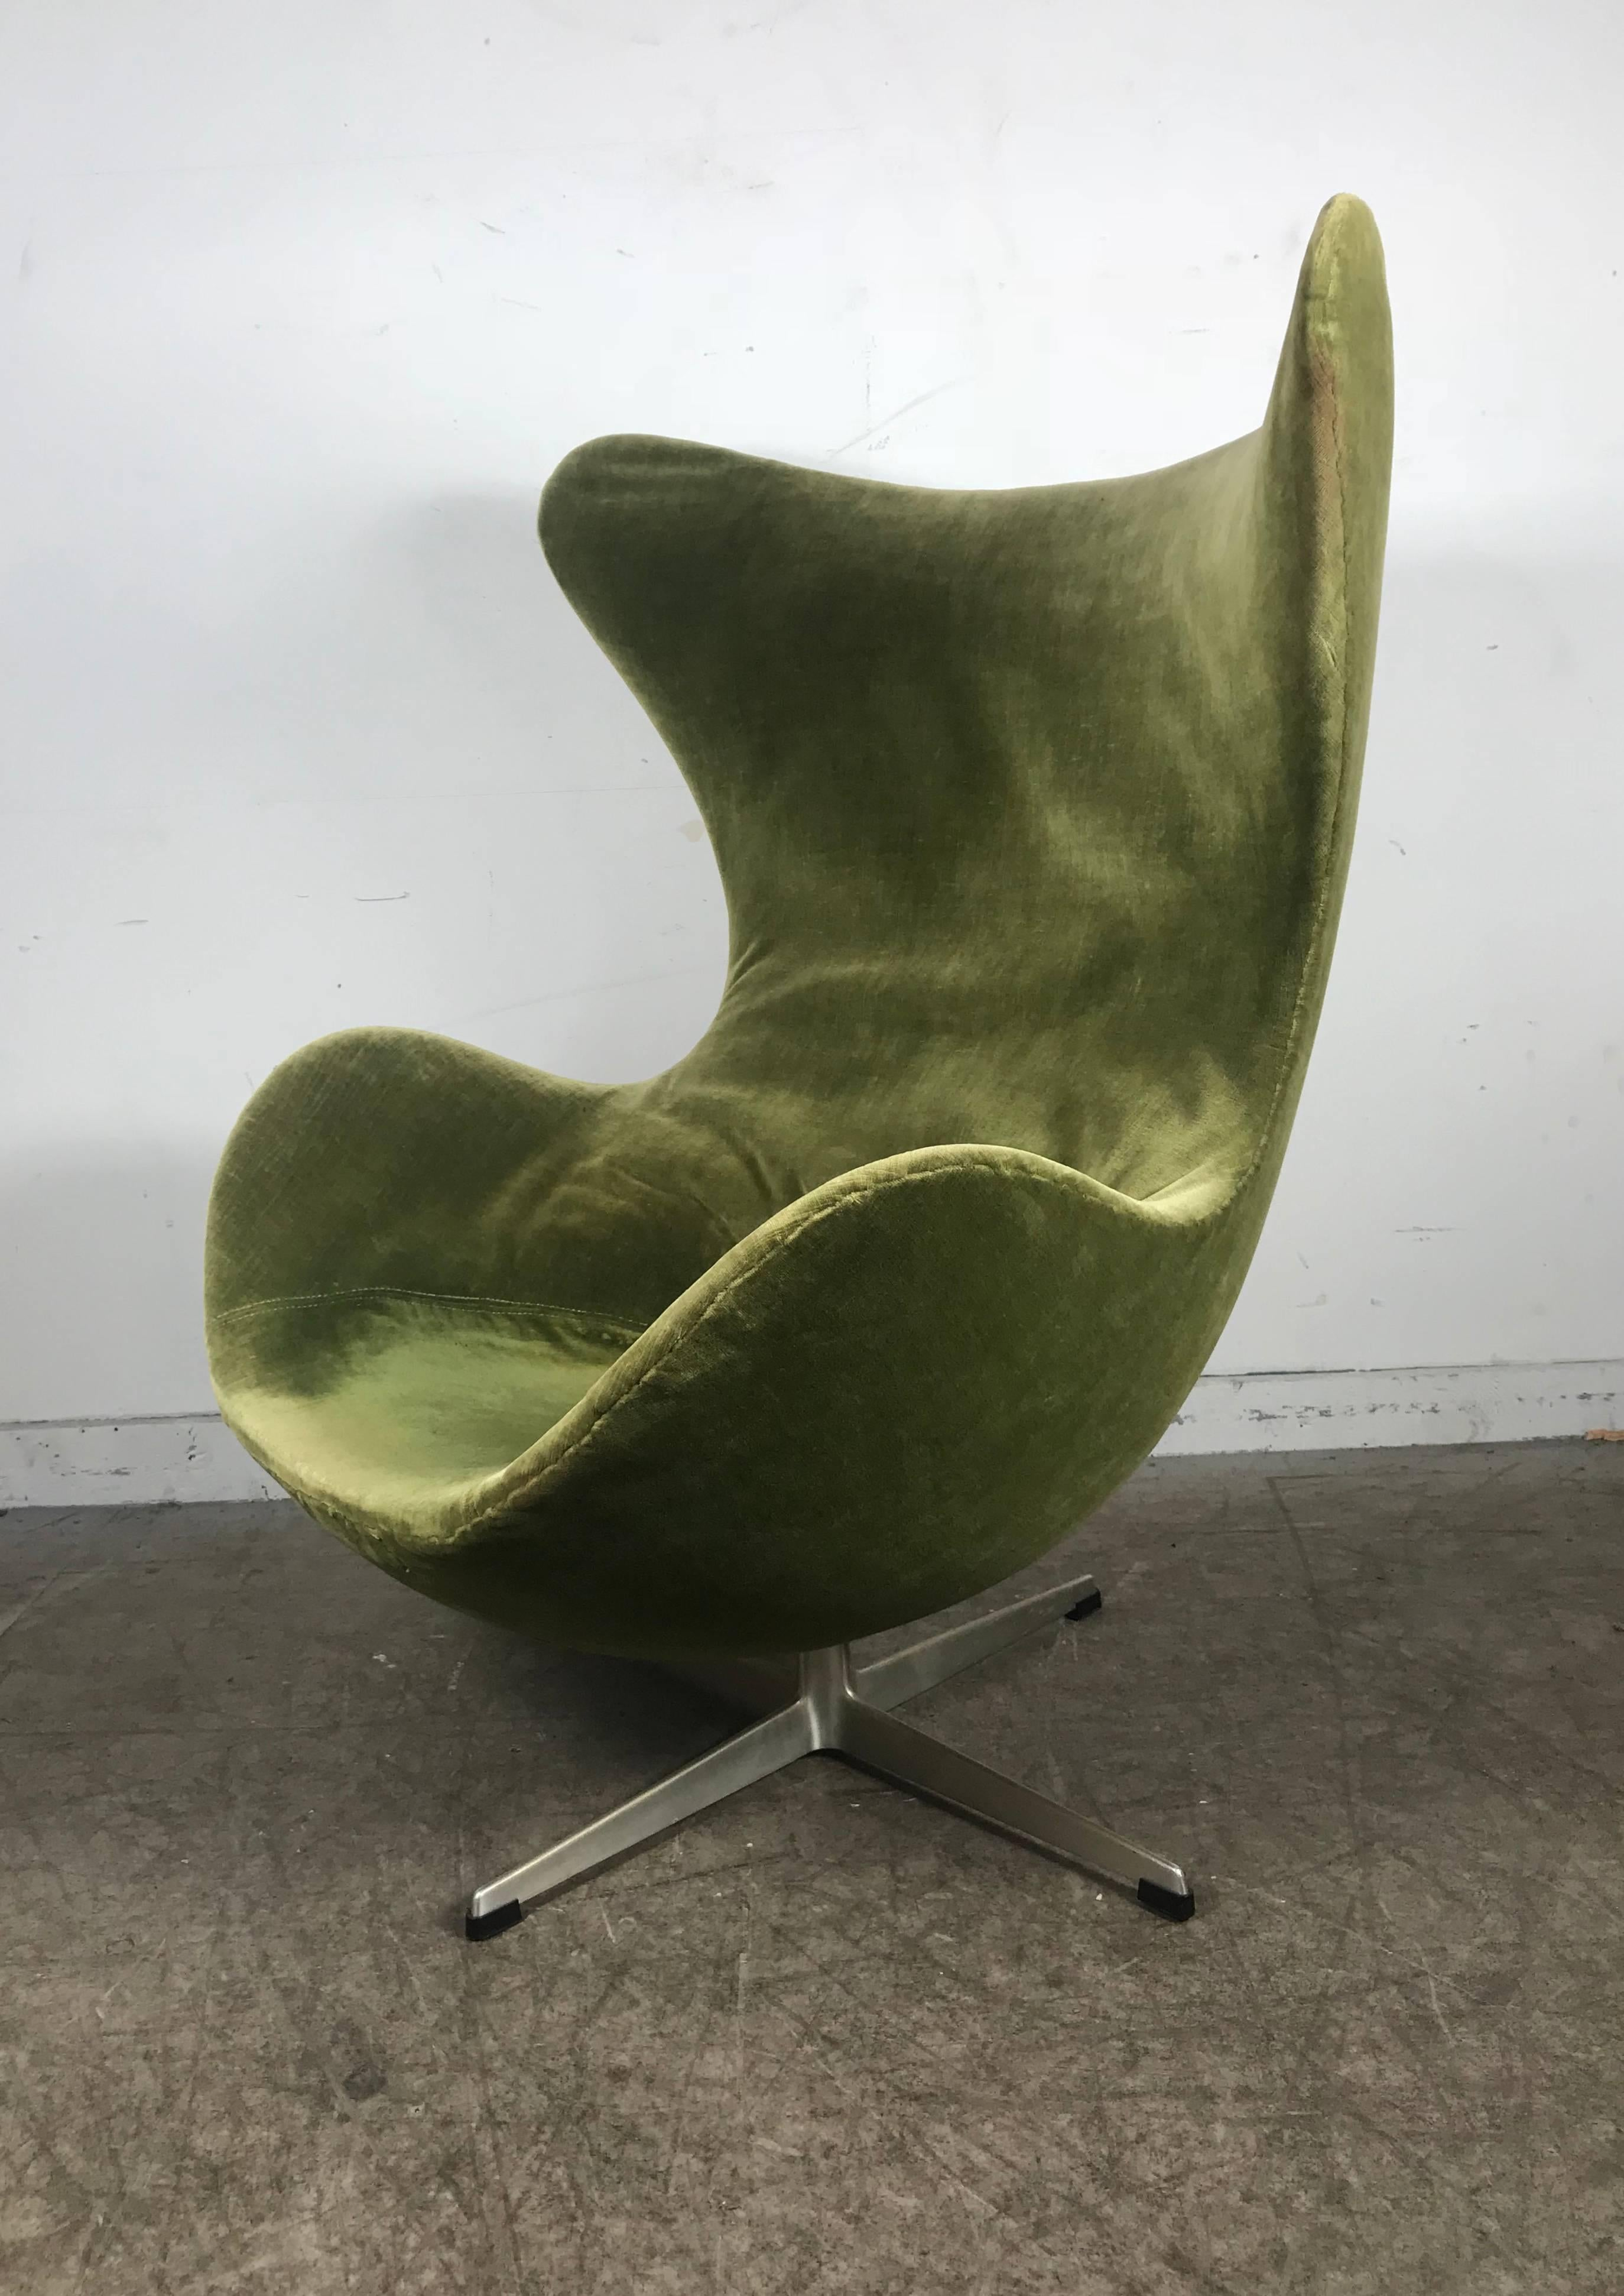 Egg Chair Gebraucht Egg Chair Original Fritz Hansen Egg Chair Beautiful Original Egg